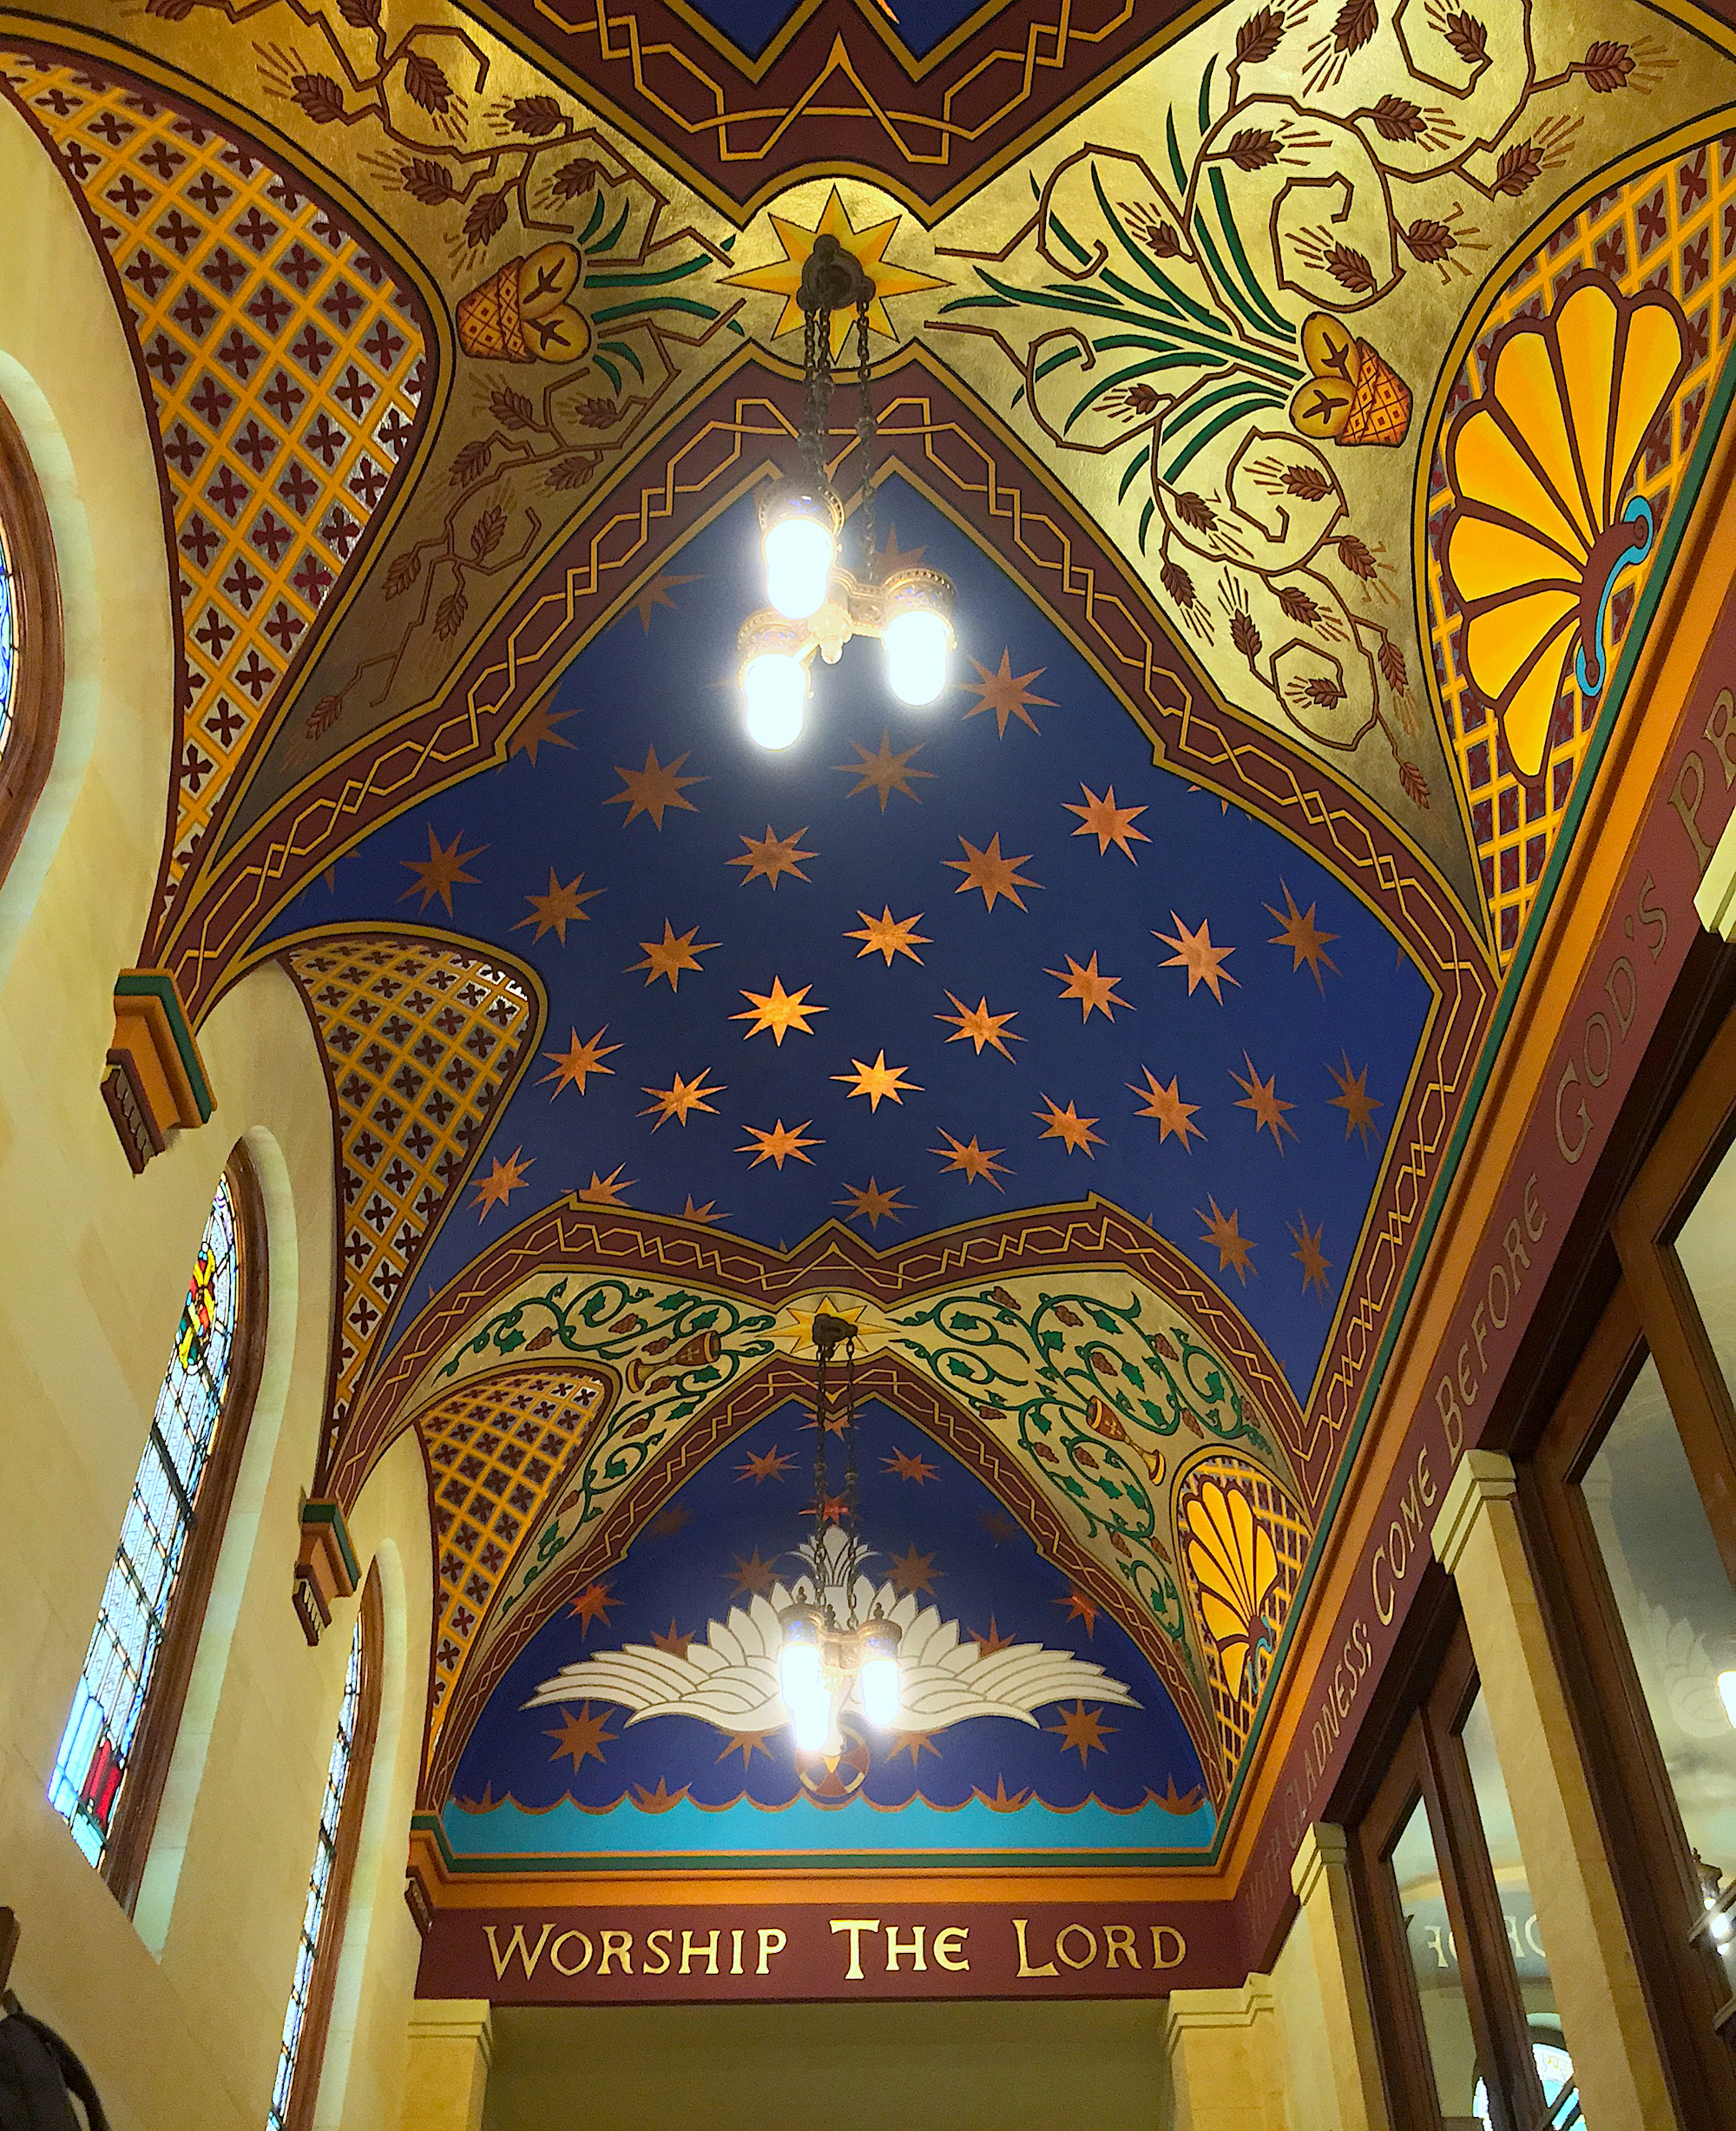 The Exonarthex Ceiling at Old First Presbyterian Church in San Francisco was Larry Boyce's last project, completed by volunteers after he died in 1992. Photo by Hunter Oatman-Stanford.